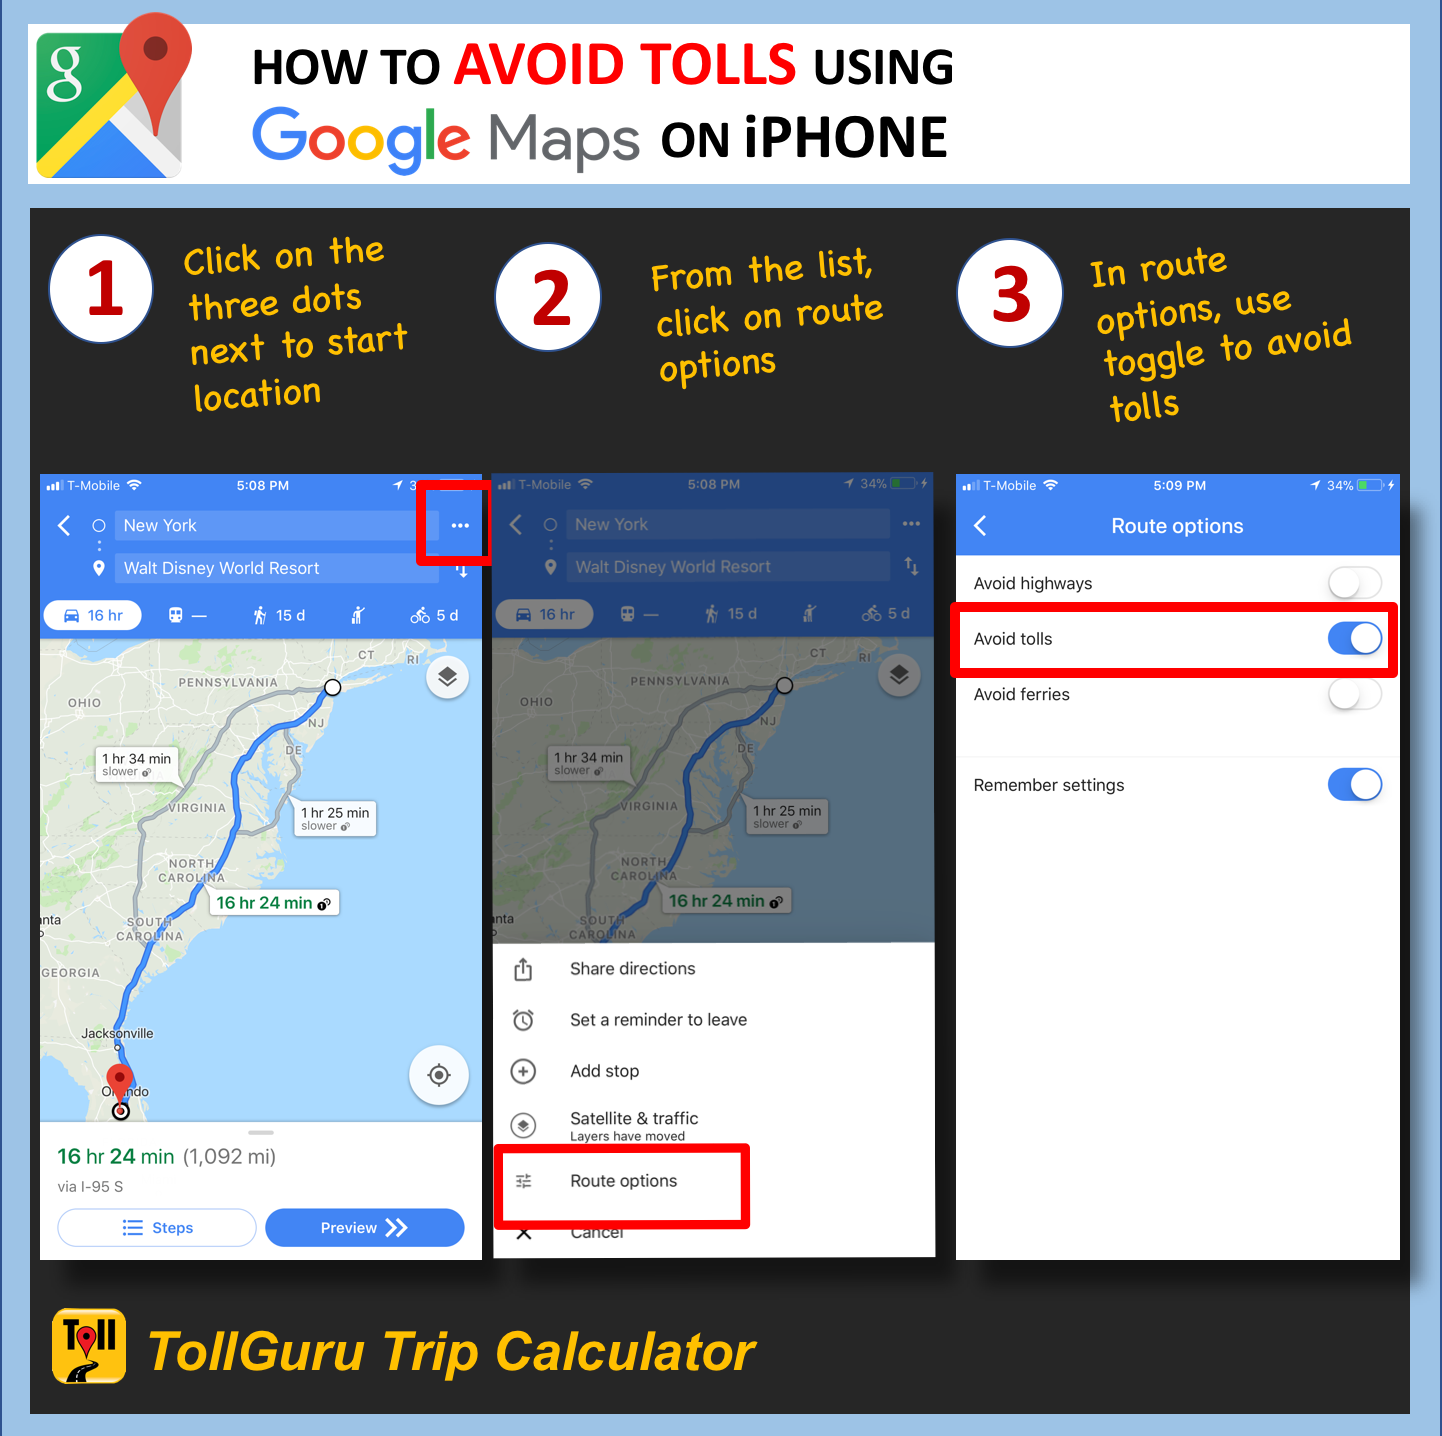 how to avoid tolls using google maps on iphone 3 simple steps or